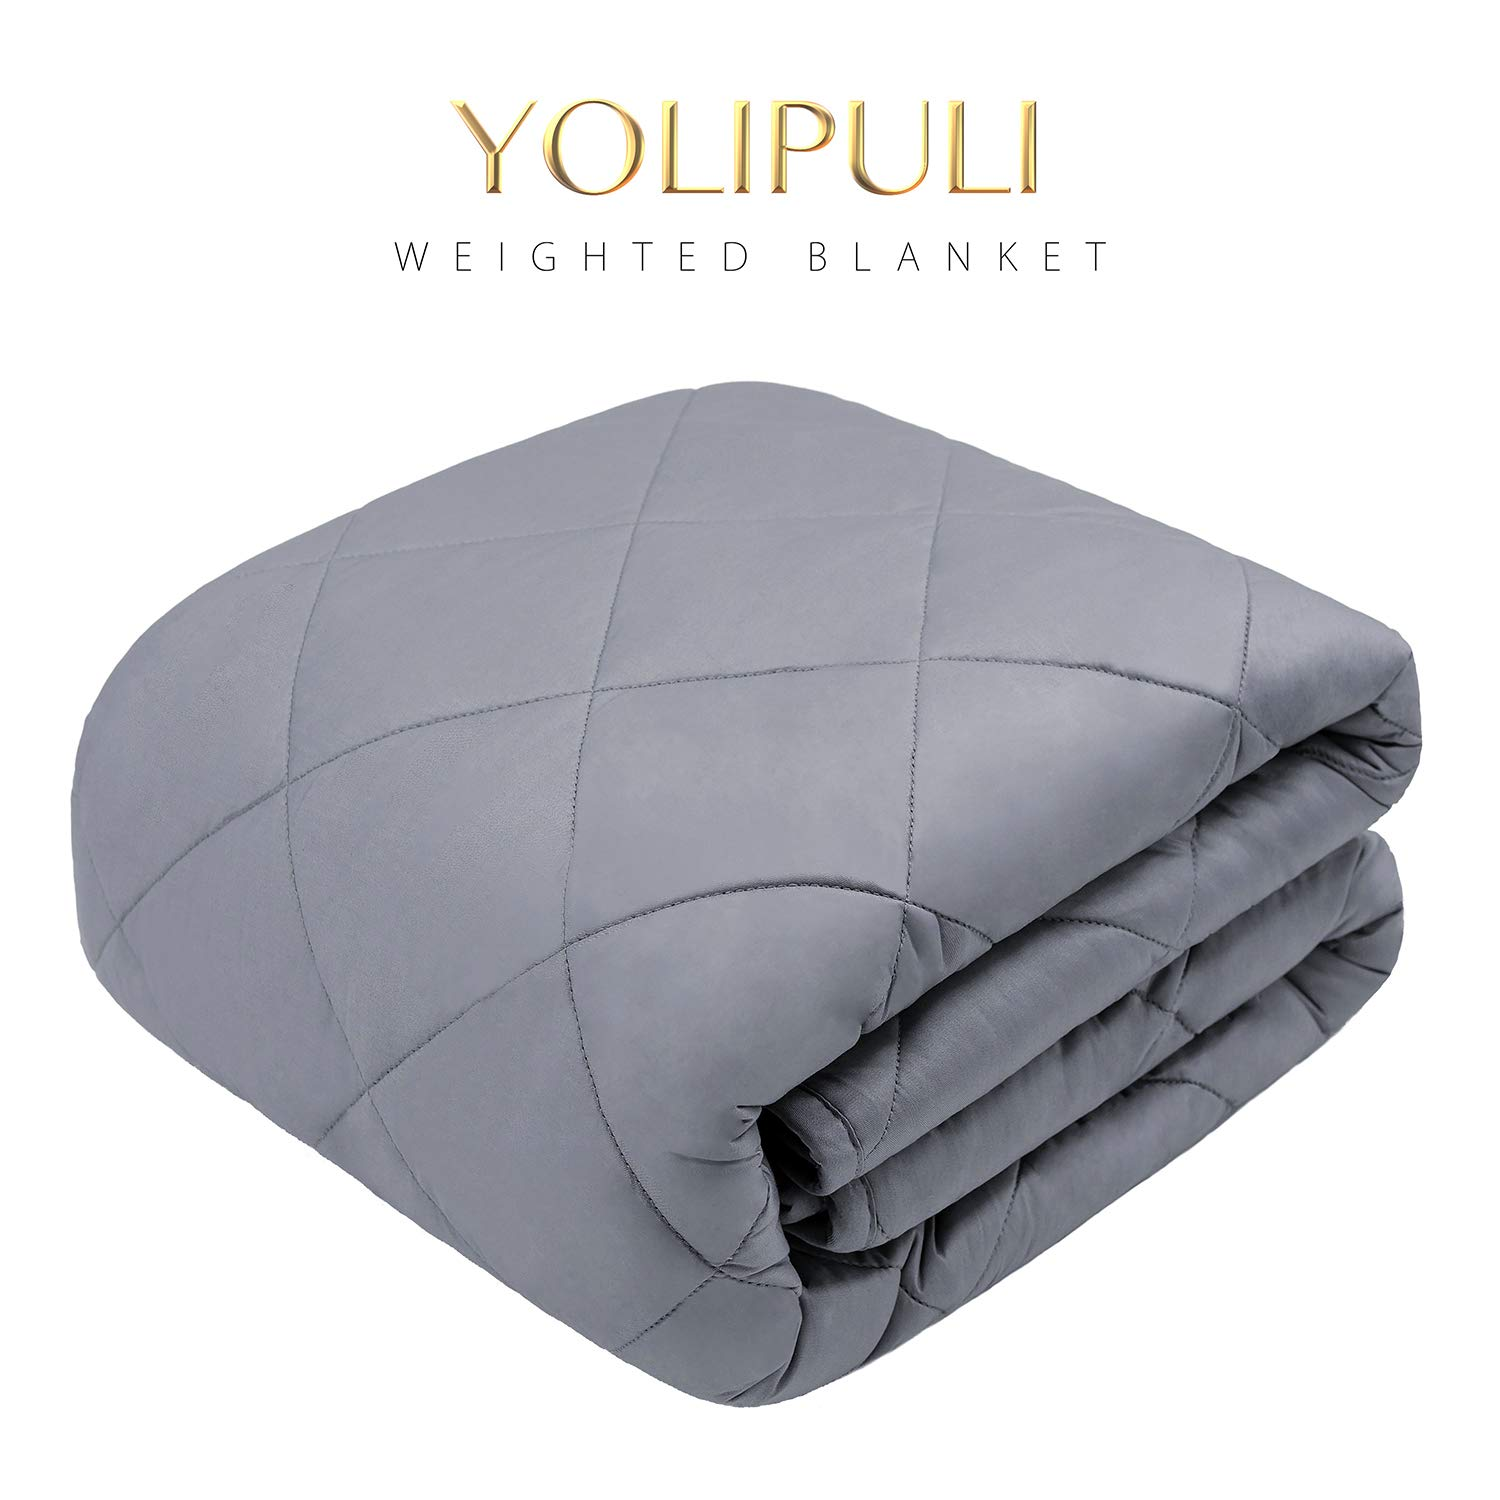 YOLIPULI Weighted Blanket 15 lbs for Kids Adult, Twin/Full Size, 48''x72'' Heavy Blanket, 100% Cotton Filled with Premium Glass Beads, Grey by YOLIPULI